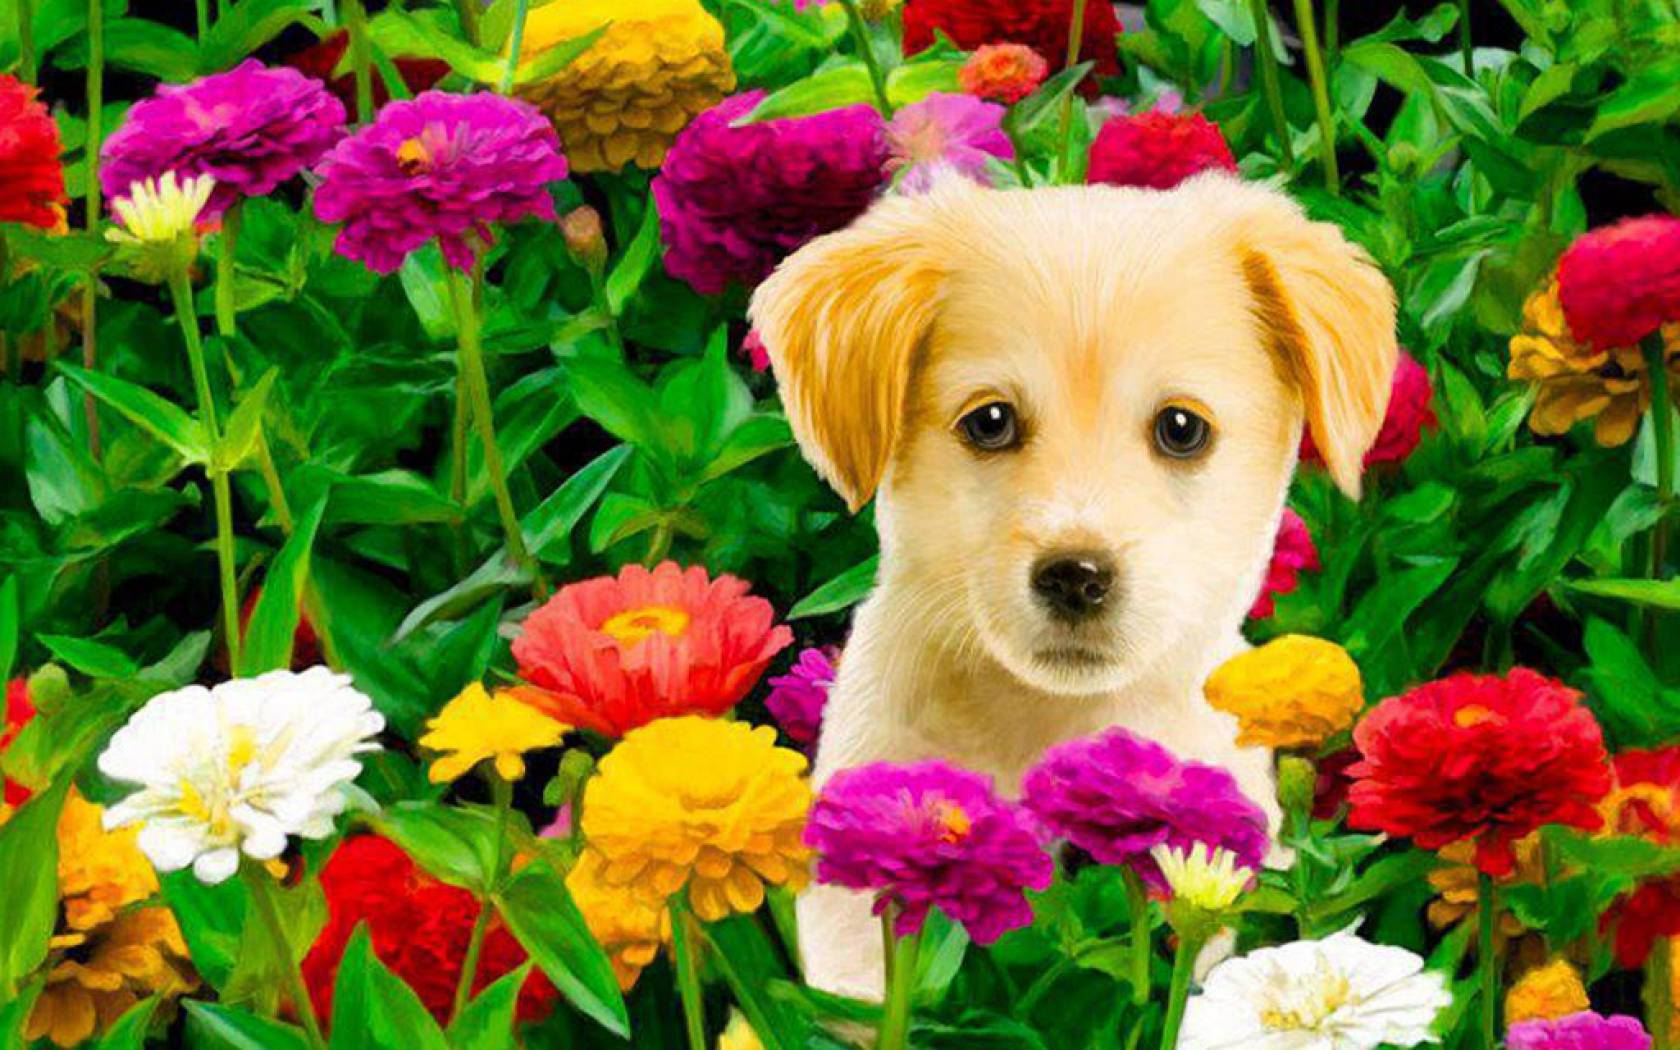 tulips flower vase pictures with Puppies And Flowers Wallpapers on Vases Bristol Glass Co Uk Bristol Blue Glass furthermore Tulip likewise Vasi In Vetro Per Fiori Piante 5 Idee Design as well Celebrate The Day in addition Product.